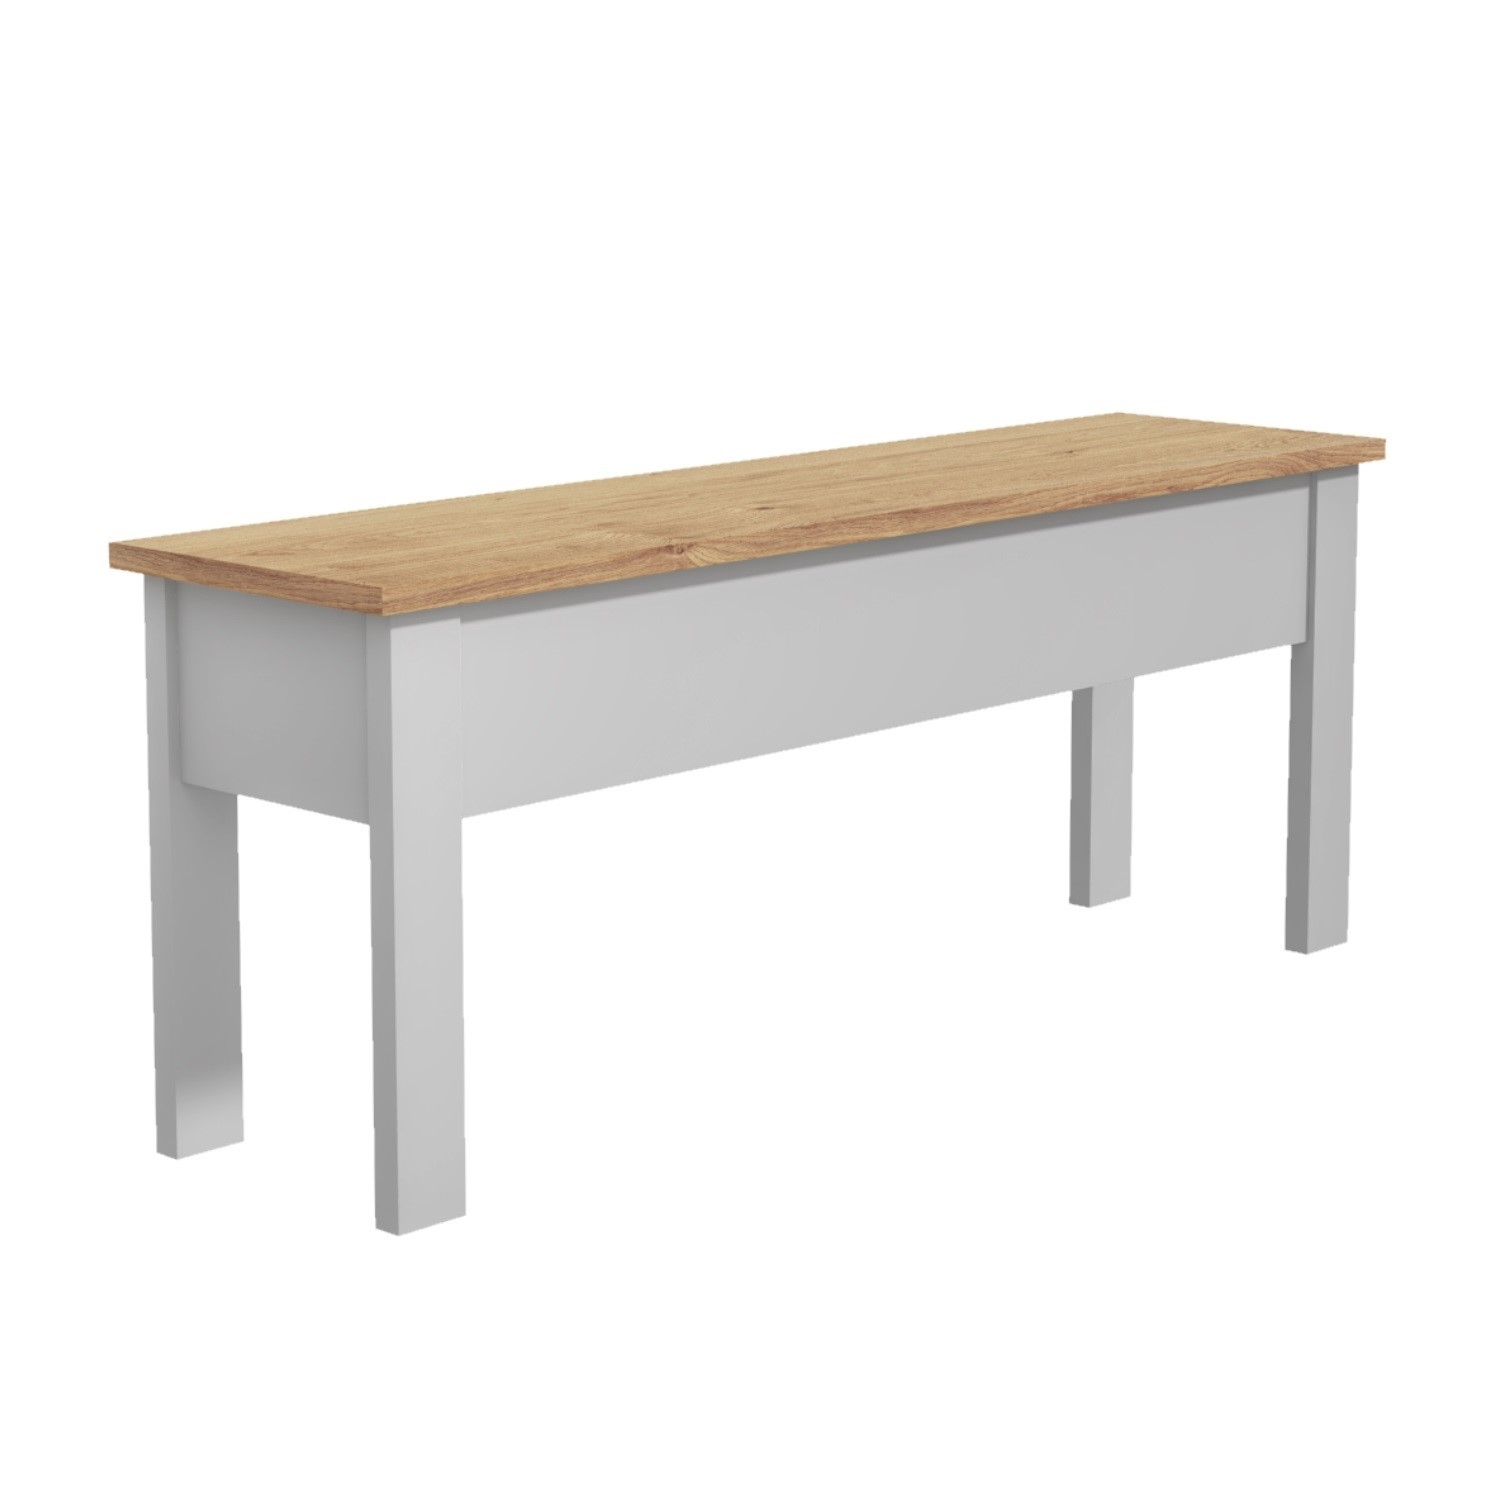 Emerson Solid Pine & Grey Dining Bench with Storage - Seats